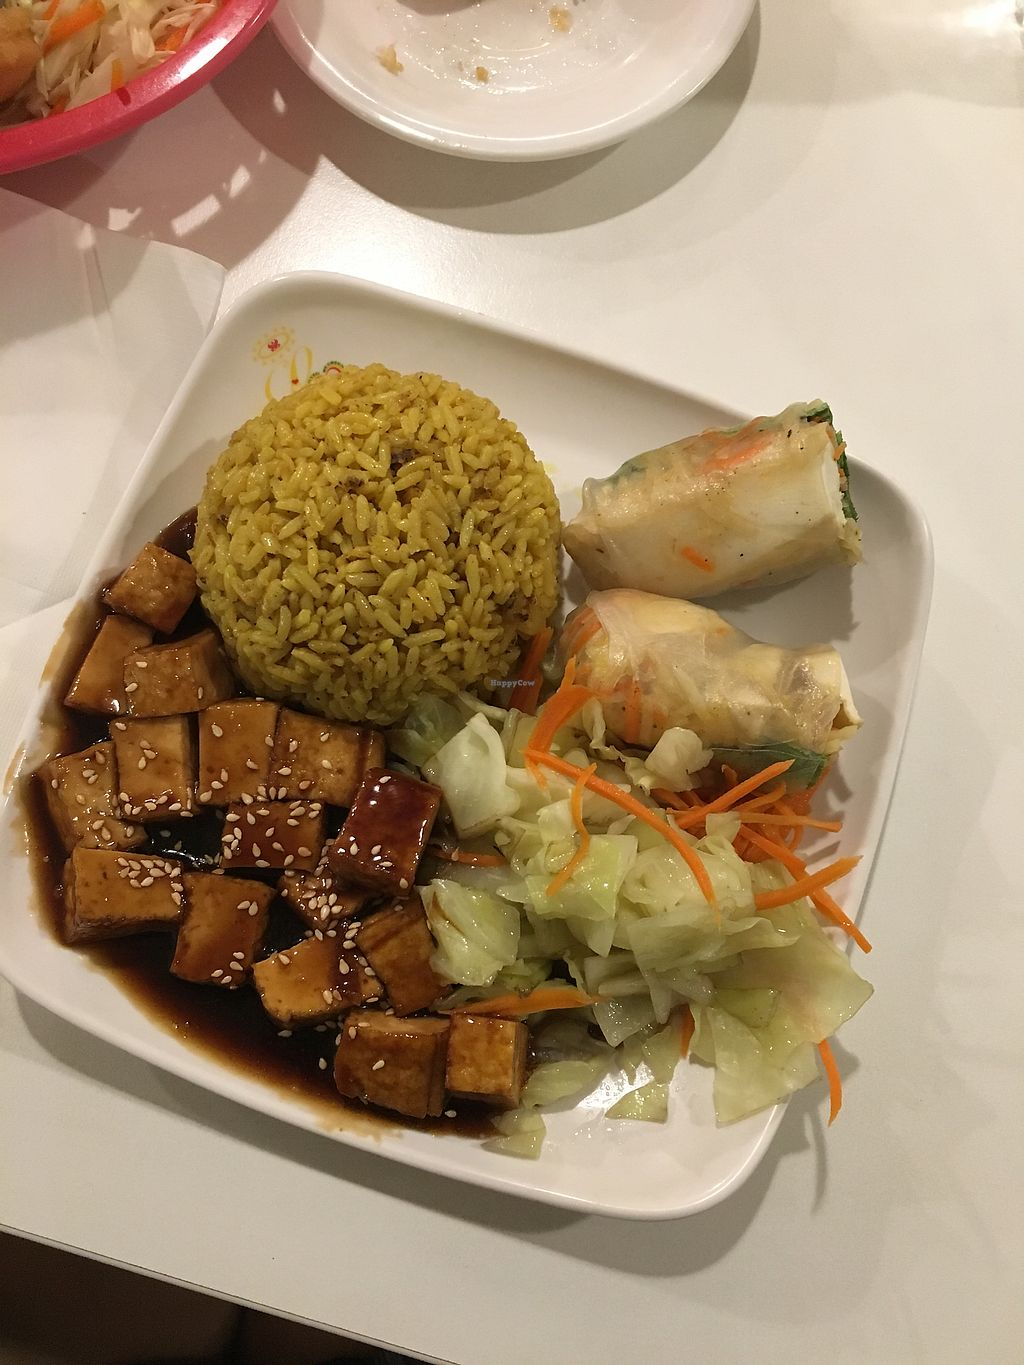 "Photo of Loving Hut  by <a href=""/members/profile/kaelashai"">kaelashai</a> <br/>Combo #1 mushroom tofu, yellow rice, and summer rolls <br/> November 12, 2017  - <a href='/contact/abuse/image/16703/324959'>Report</a>"